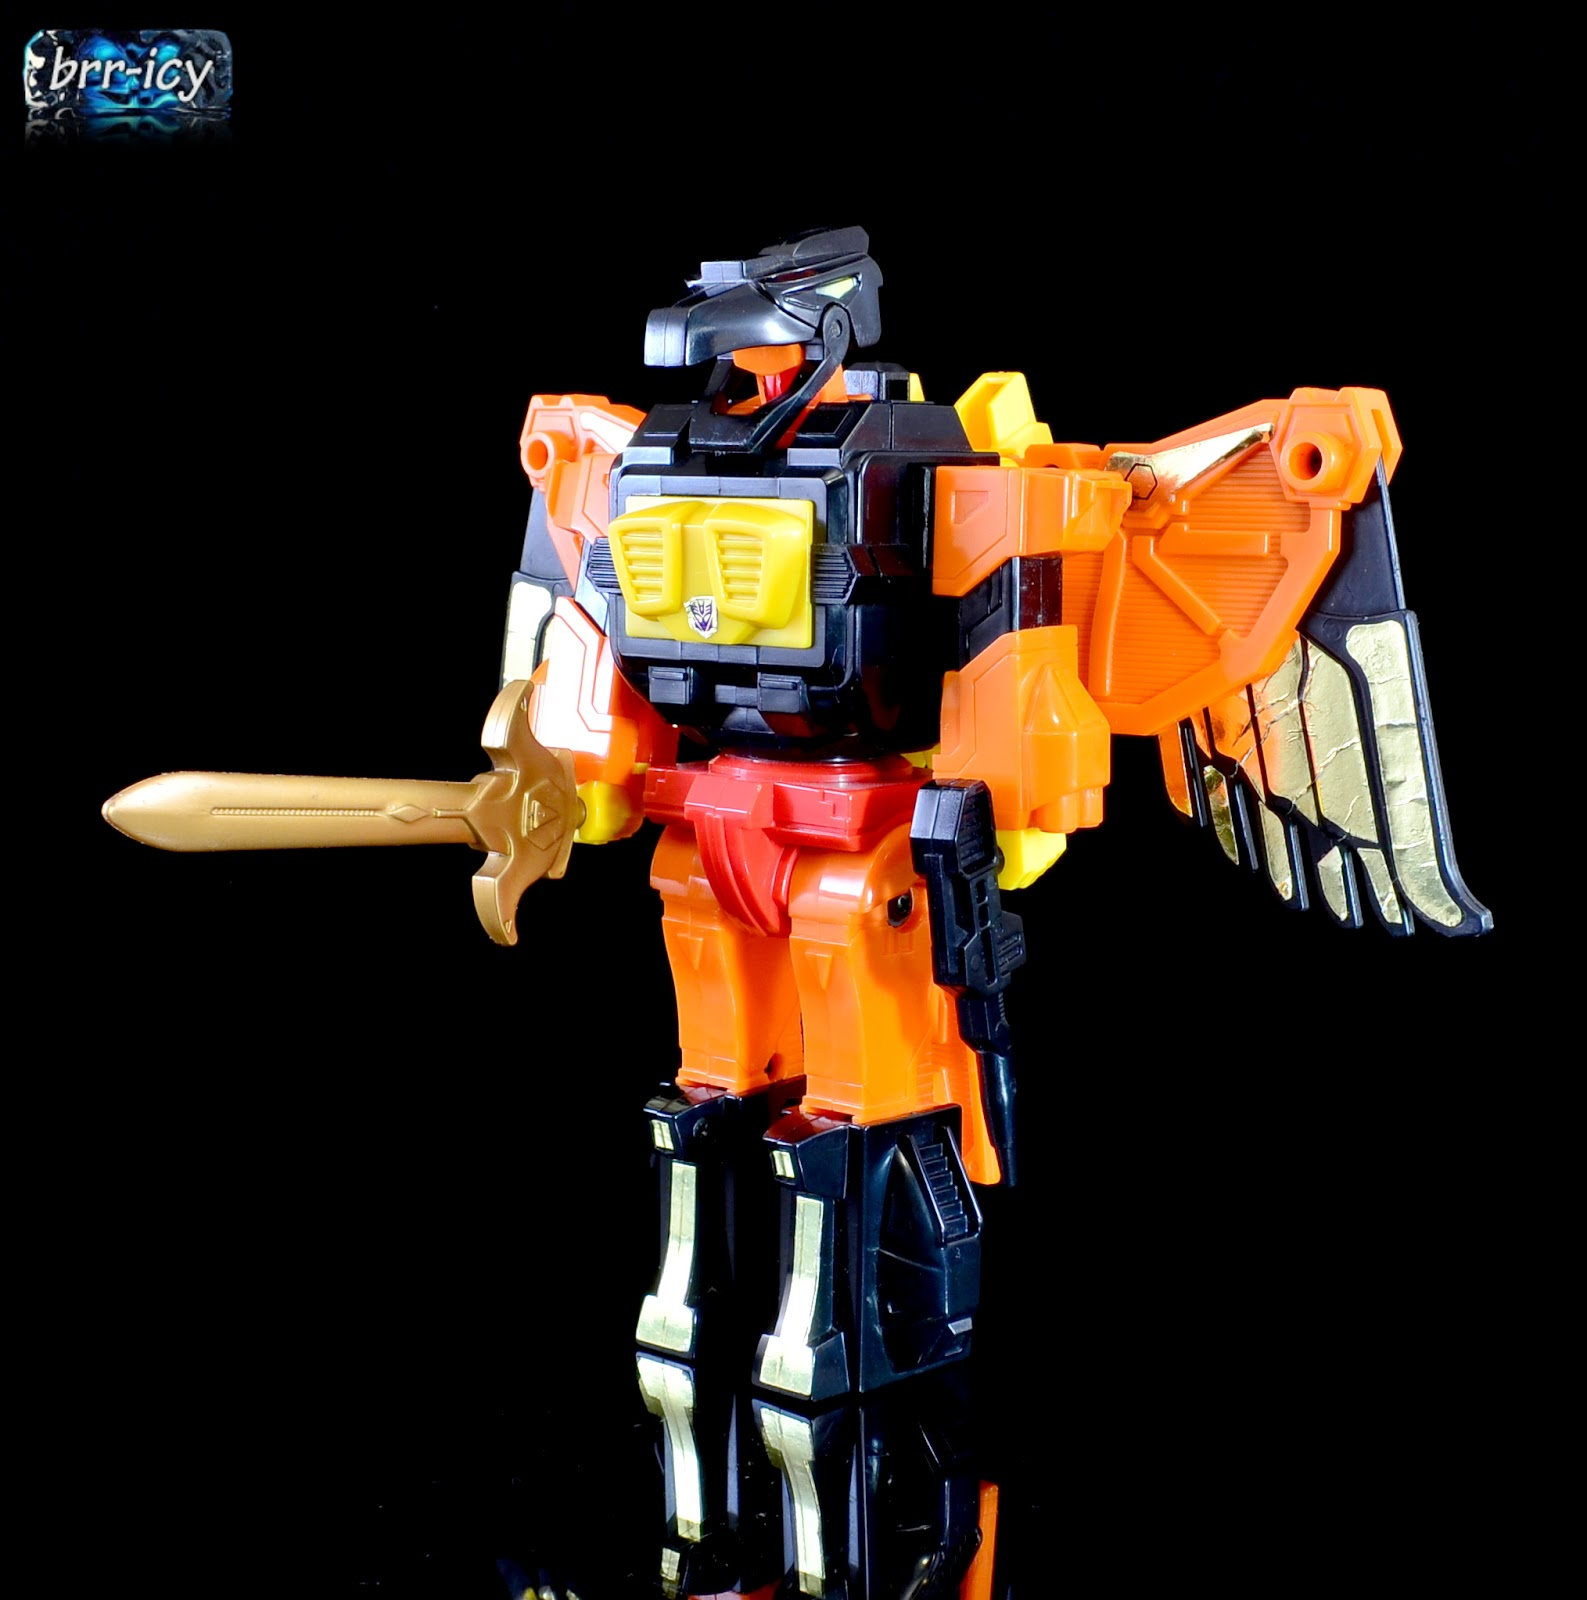 Brr-icy's Transformers Reviews: Predacons and Predaking